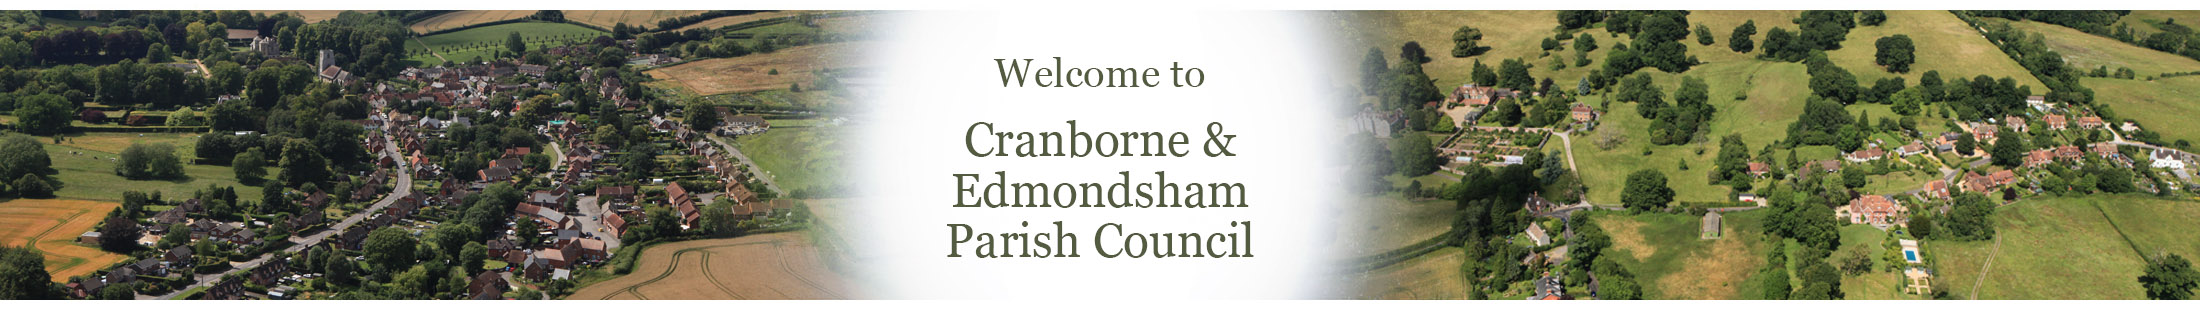 Header Image for Cranborne & Edmondsham PC